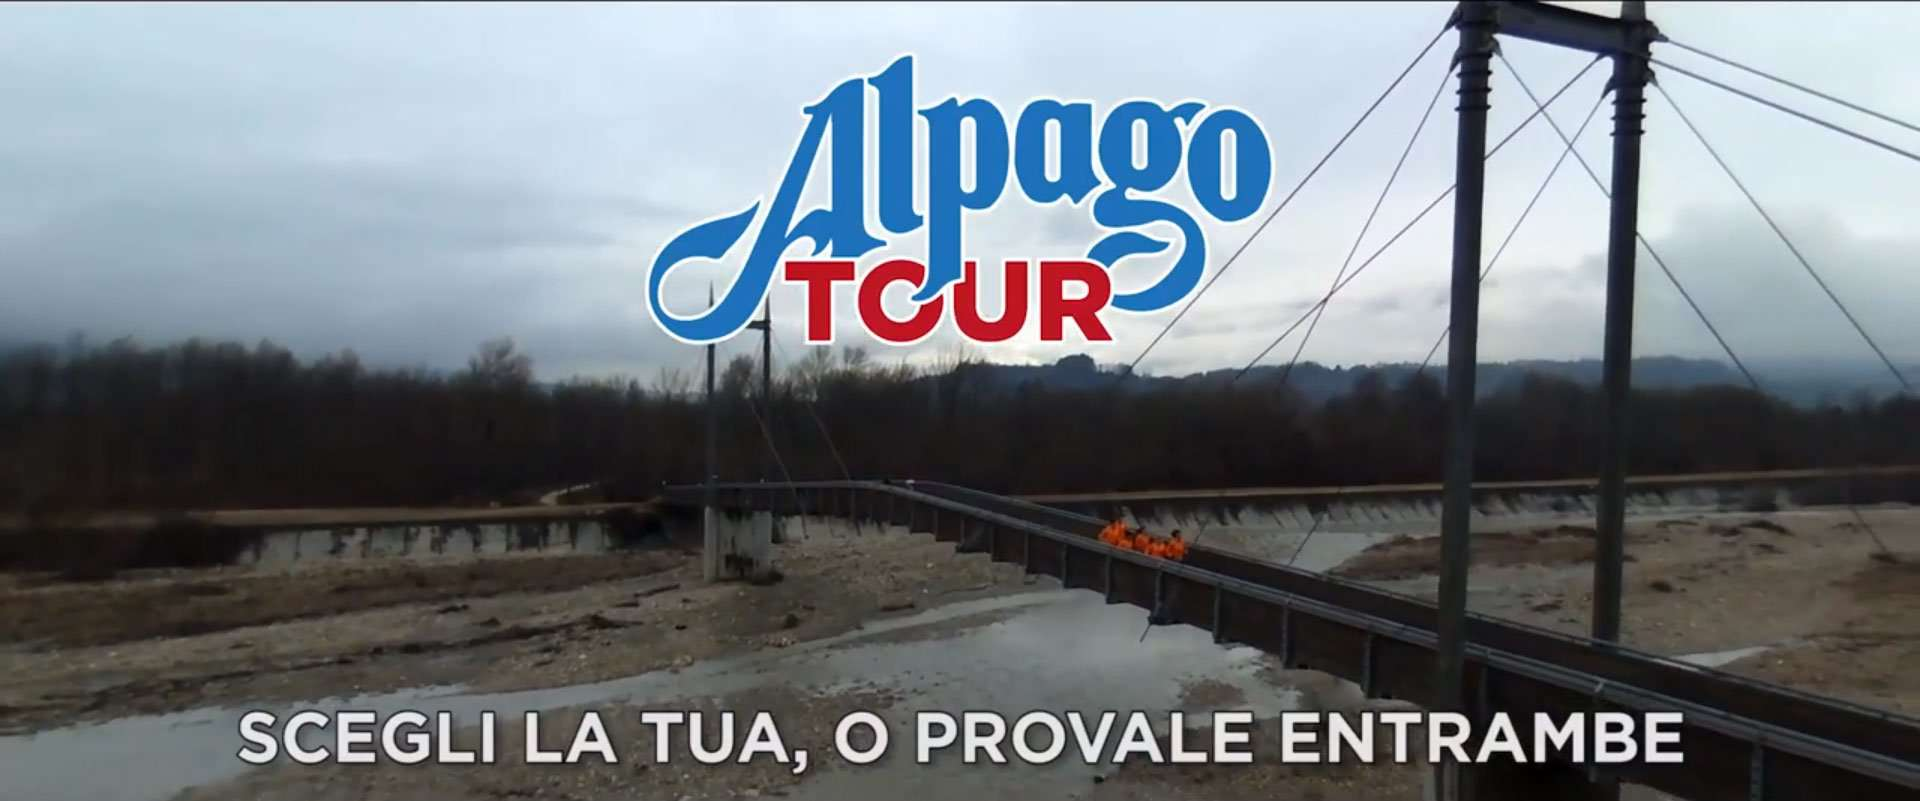 Alpago-Running-Tour-sport-video-editing-Lago-Santa-Croce-riprese-Esterne